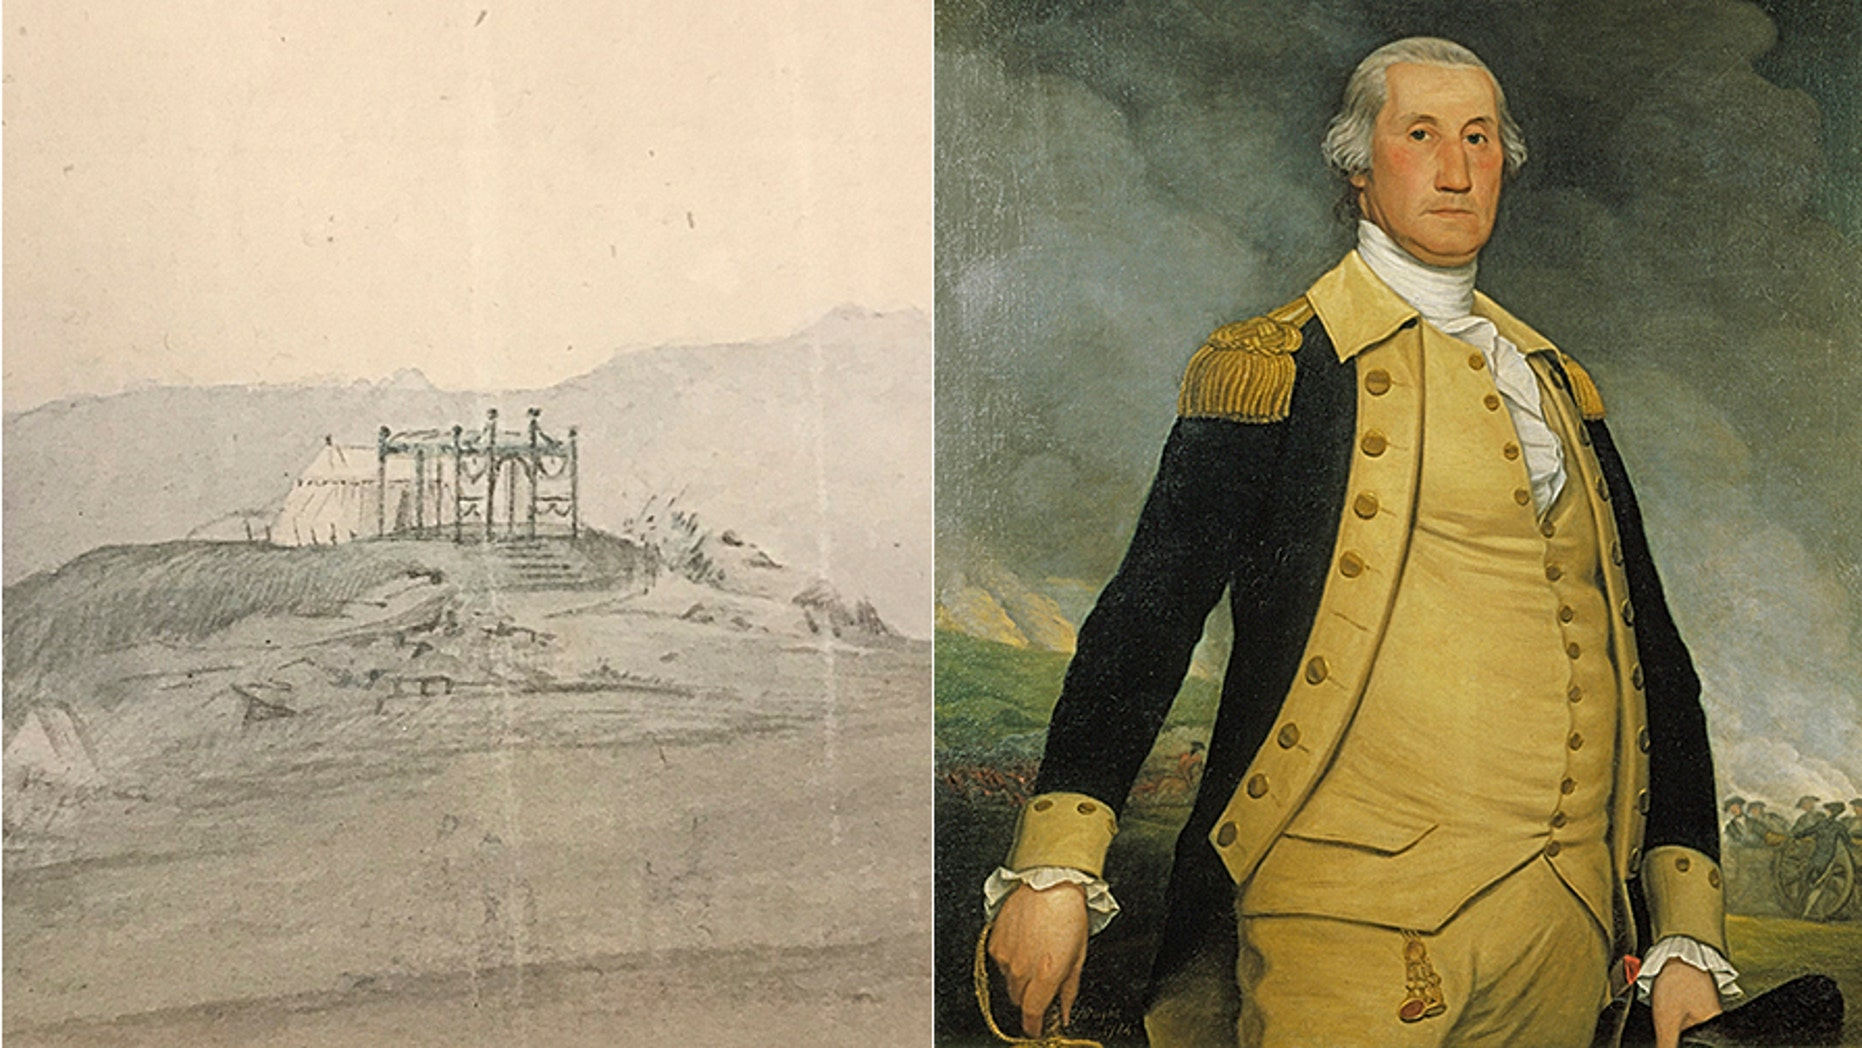 Close-up detail of the watercolor depicting George Washington's field tent (Courtesy of the Museum of the American Revolution) and portrait of George Washington by Joseph Wright, 1784. (Courtesy of the Philadelphia History Museum at the Atwater Kent, the Historical Society of Pennsylvania Collection)